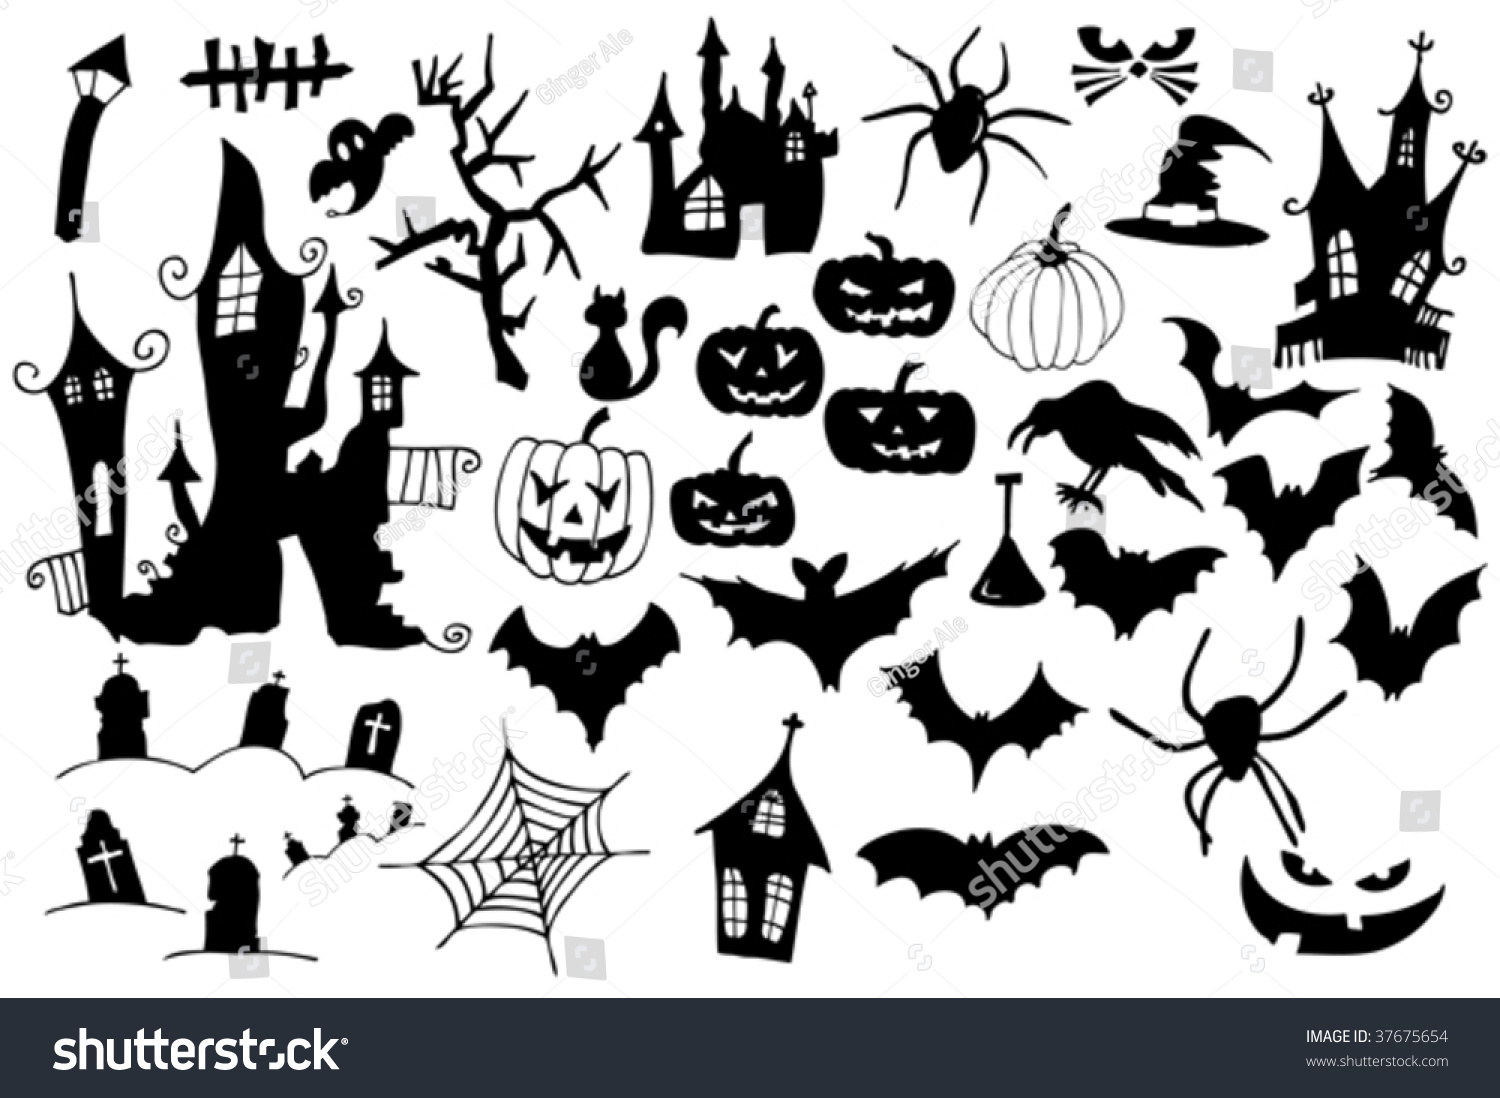 Collection halloween symbols easy edit vector stock vector collection of halloween symbols easy to edit vector image biocorpaavc Choice Image